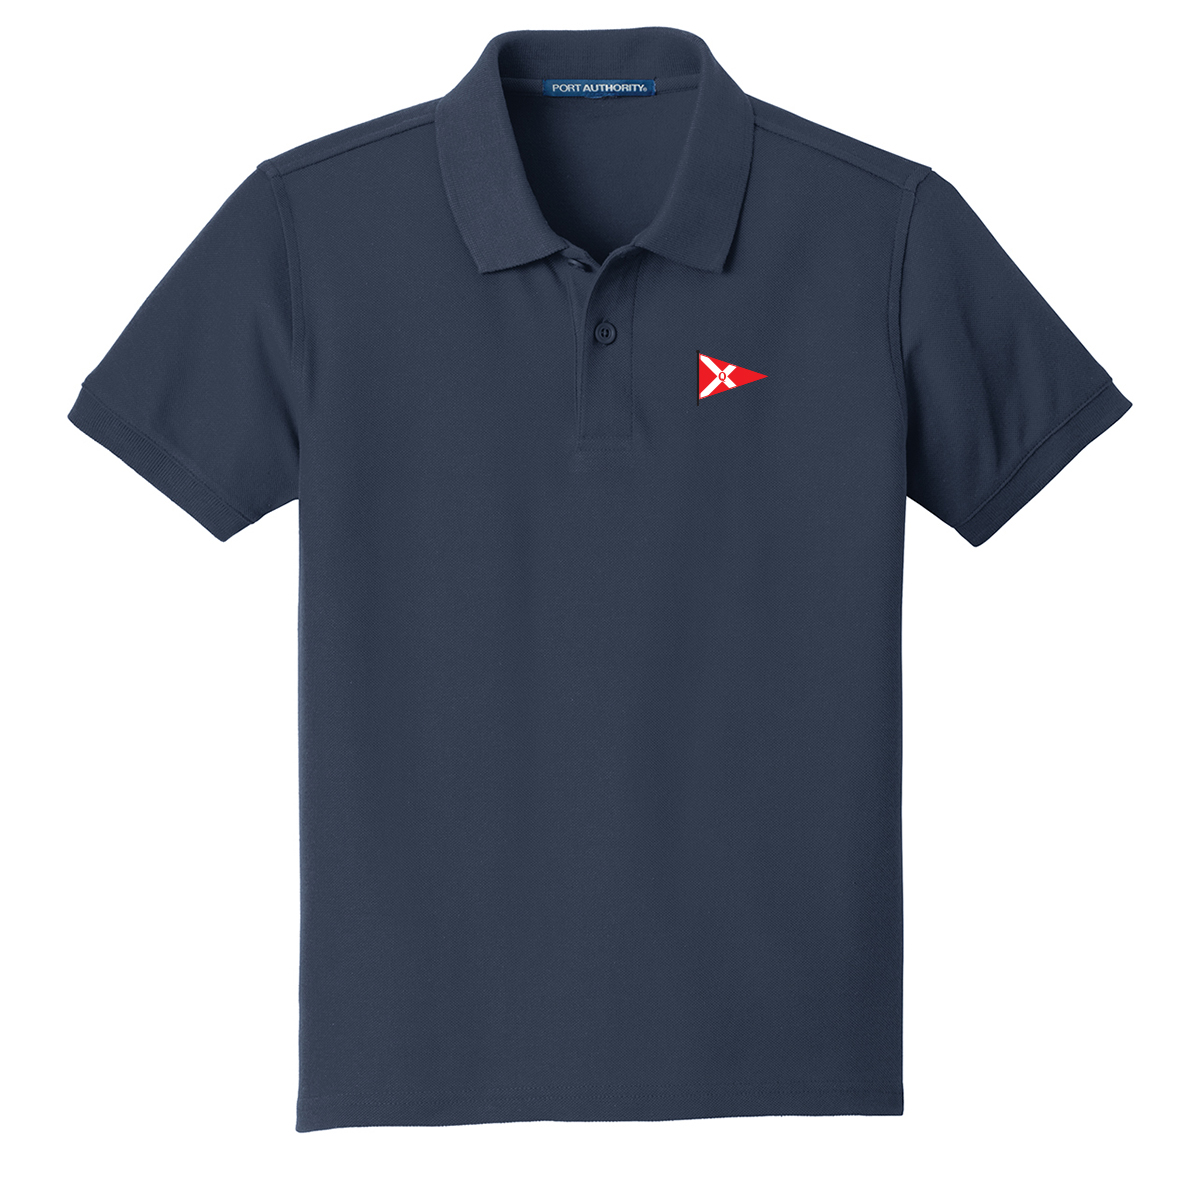 Quissett Yacht Club - Youth Cotton Polo (QYC103)